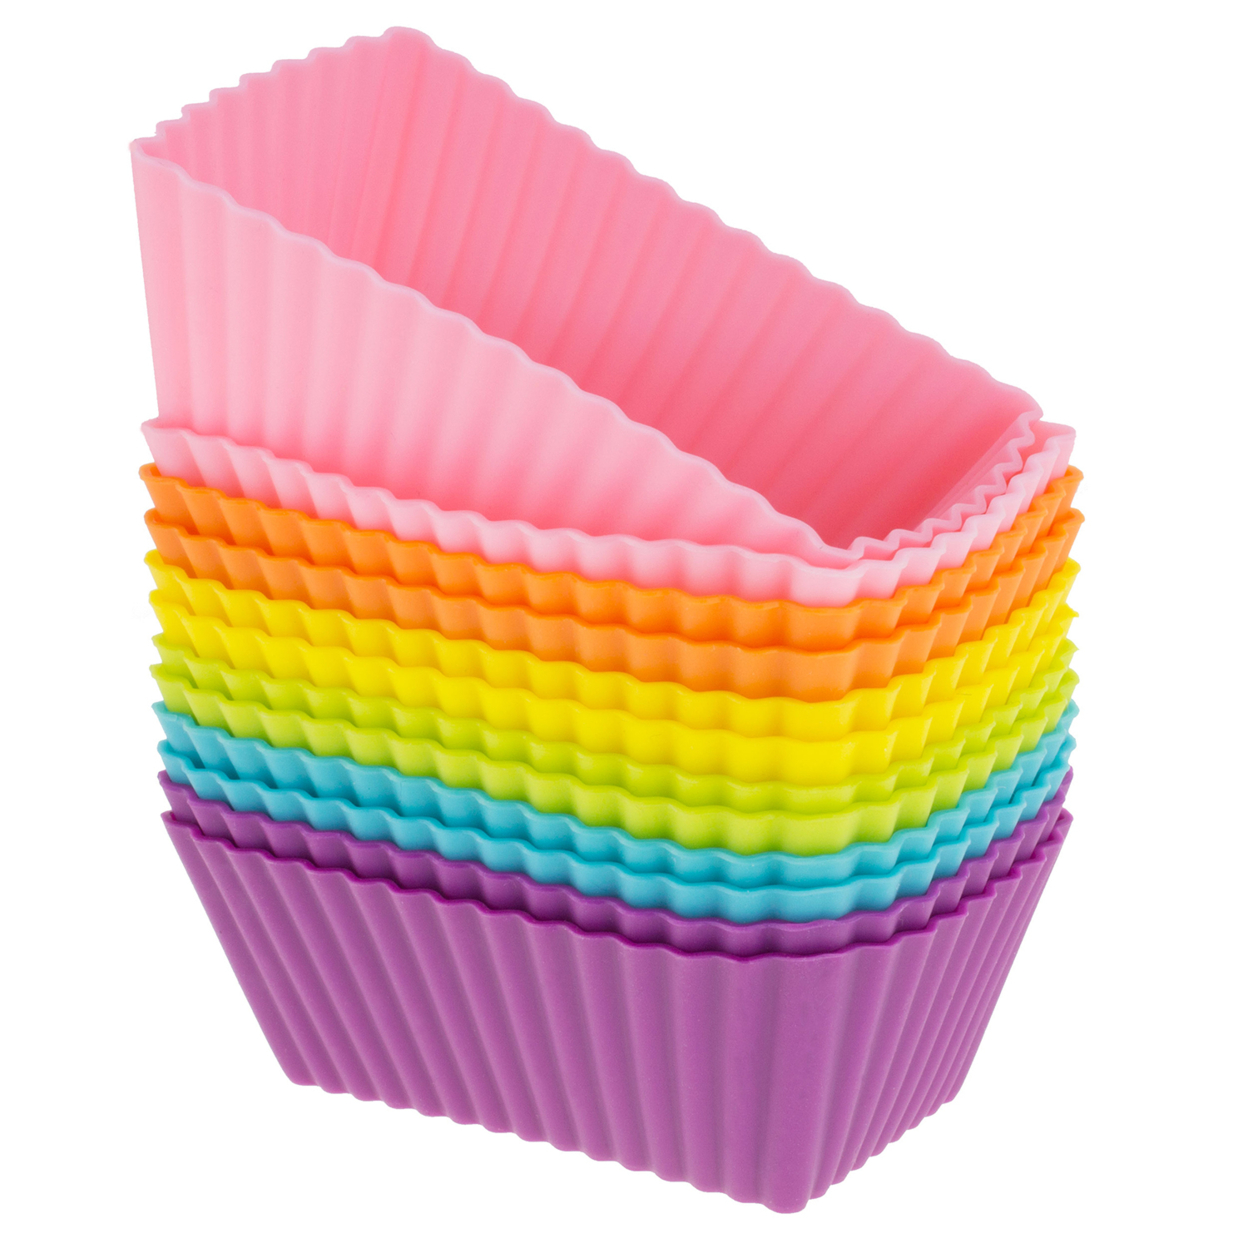 Freshware Silicone Cupcake Liners / Baking Cups - 12-Pack Muffin Molds, Rectangle, Six Vibrant Colors 554e30d07aaaaa6d388b4603